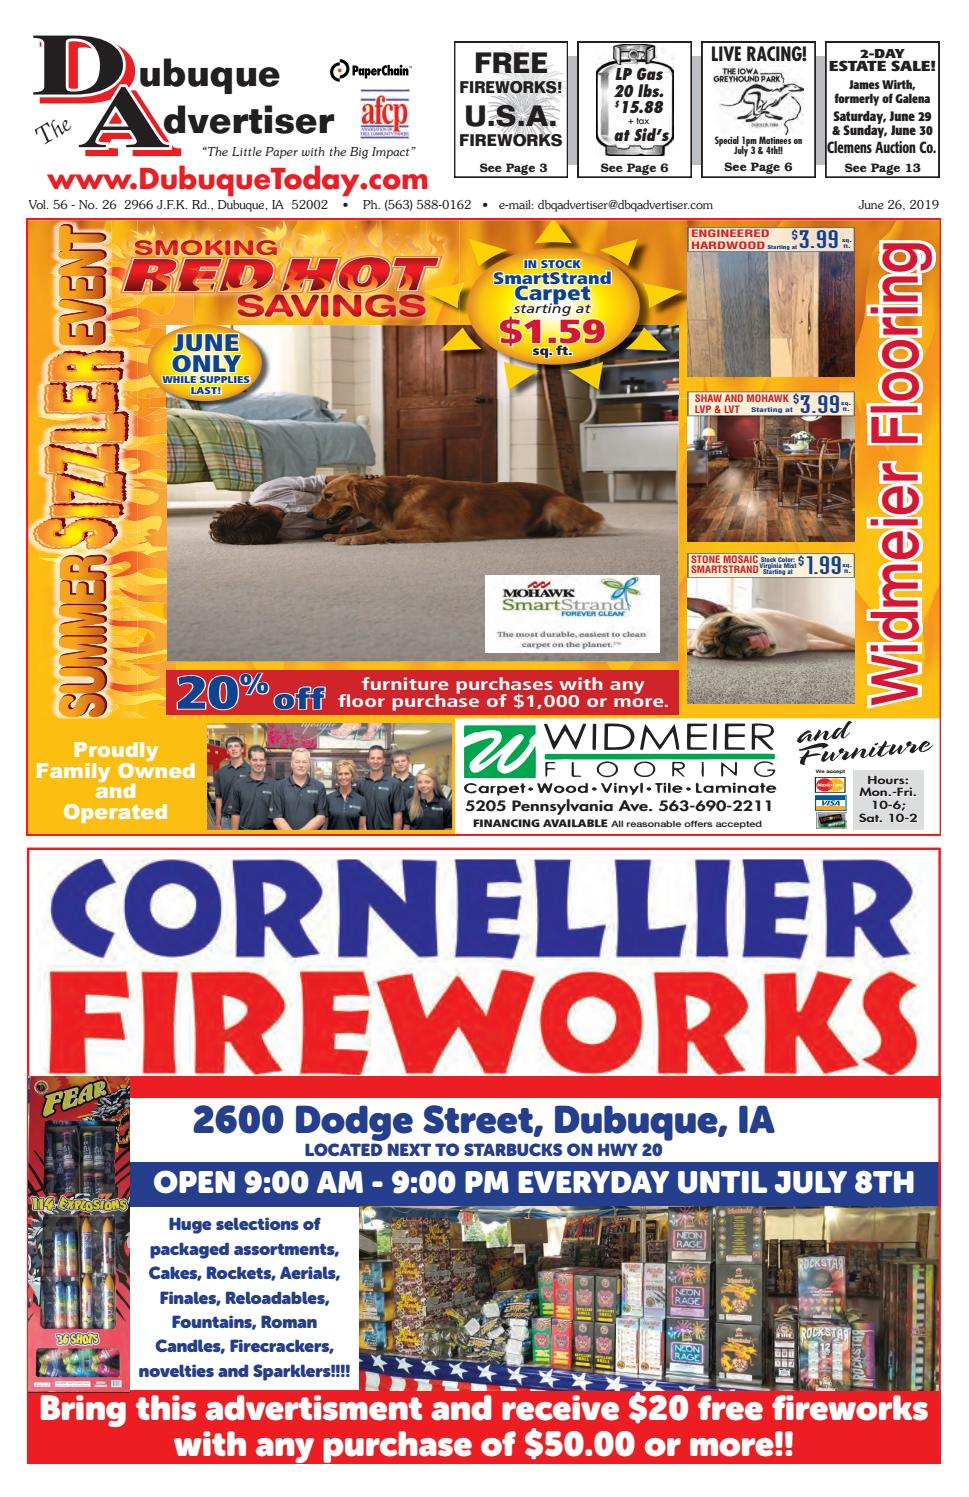 The Dubuque Advertiser June 26, 2019 by The Dubuque